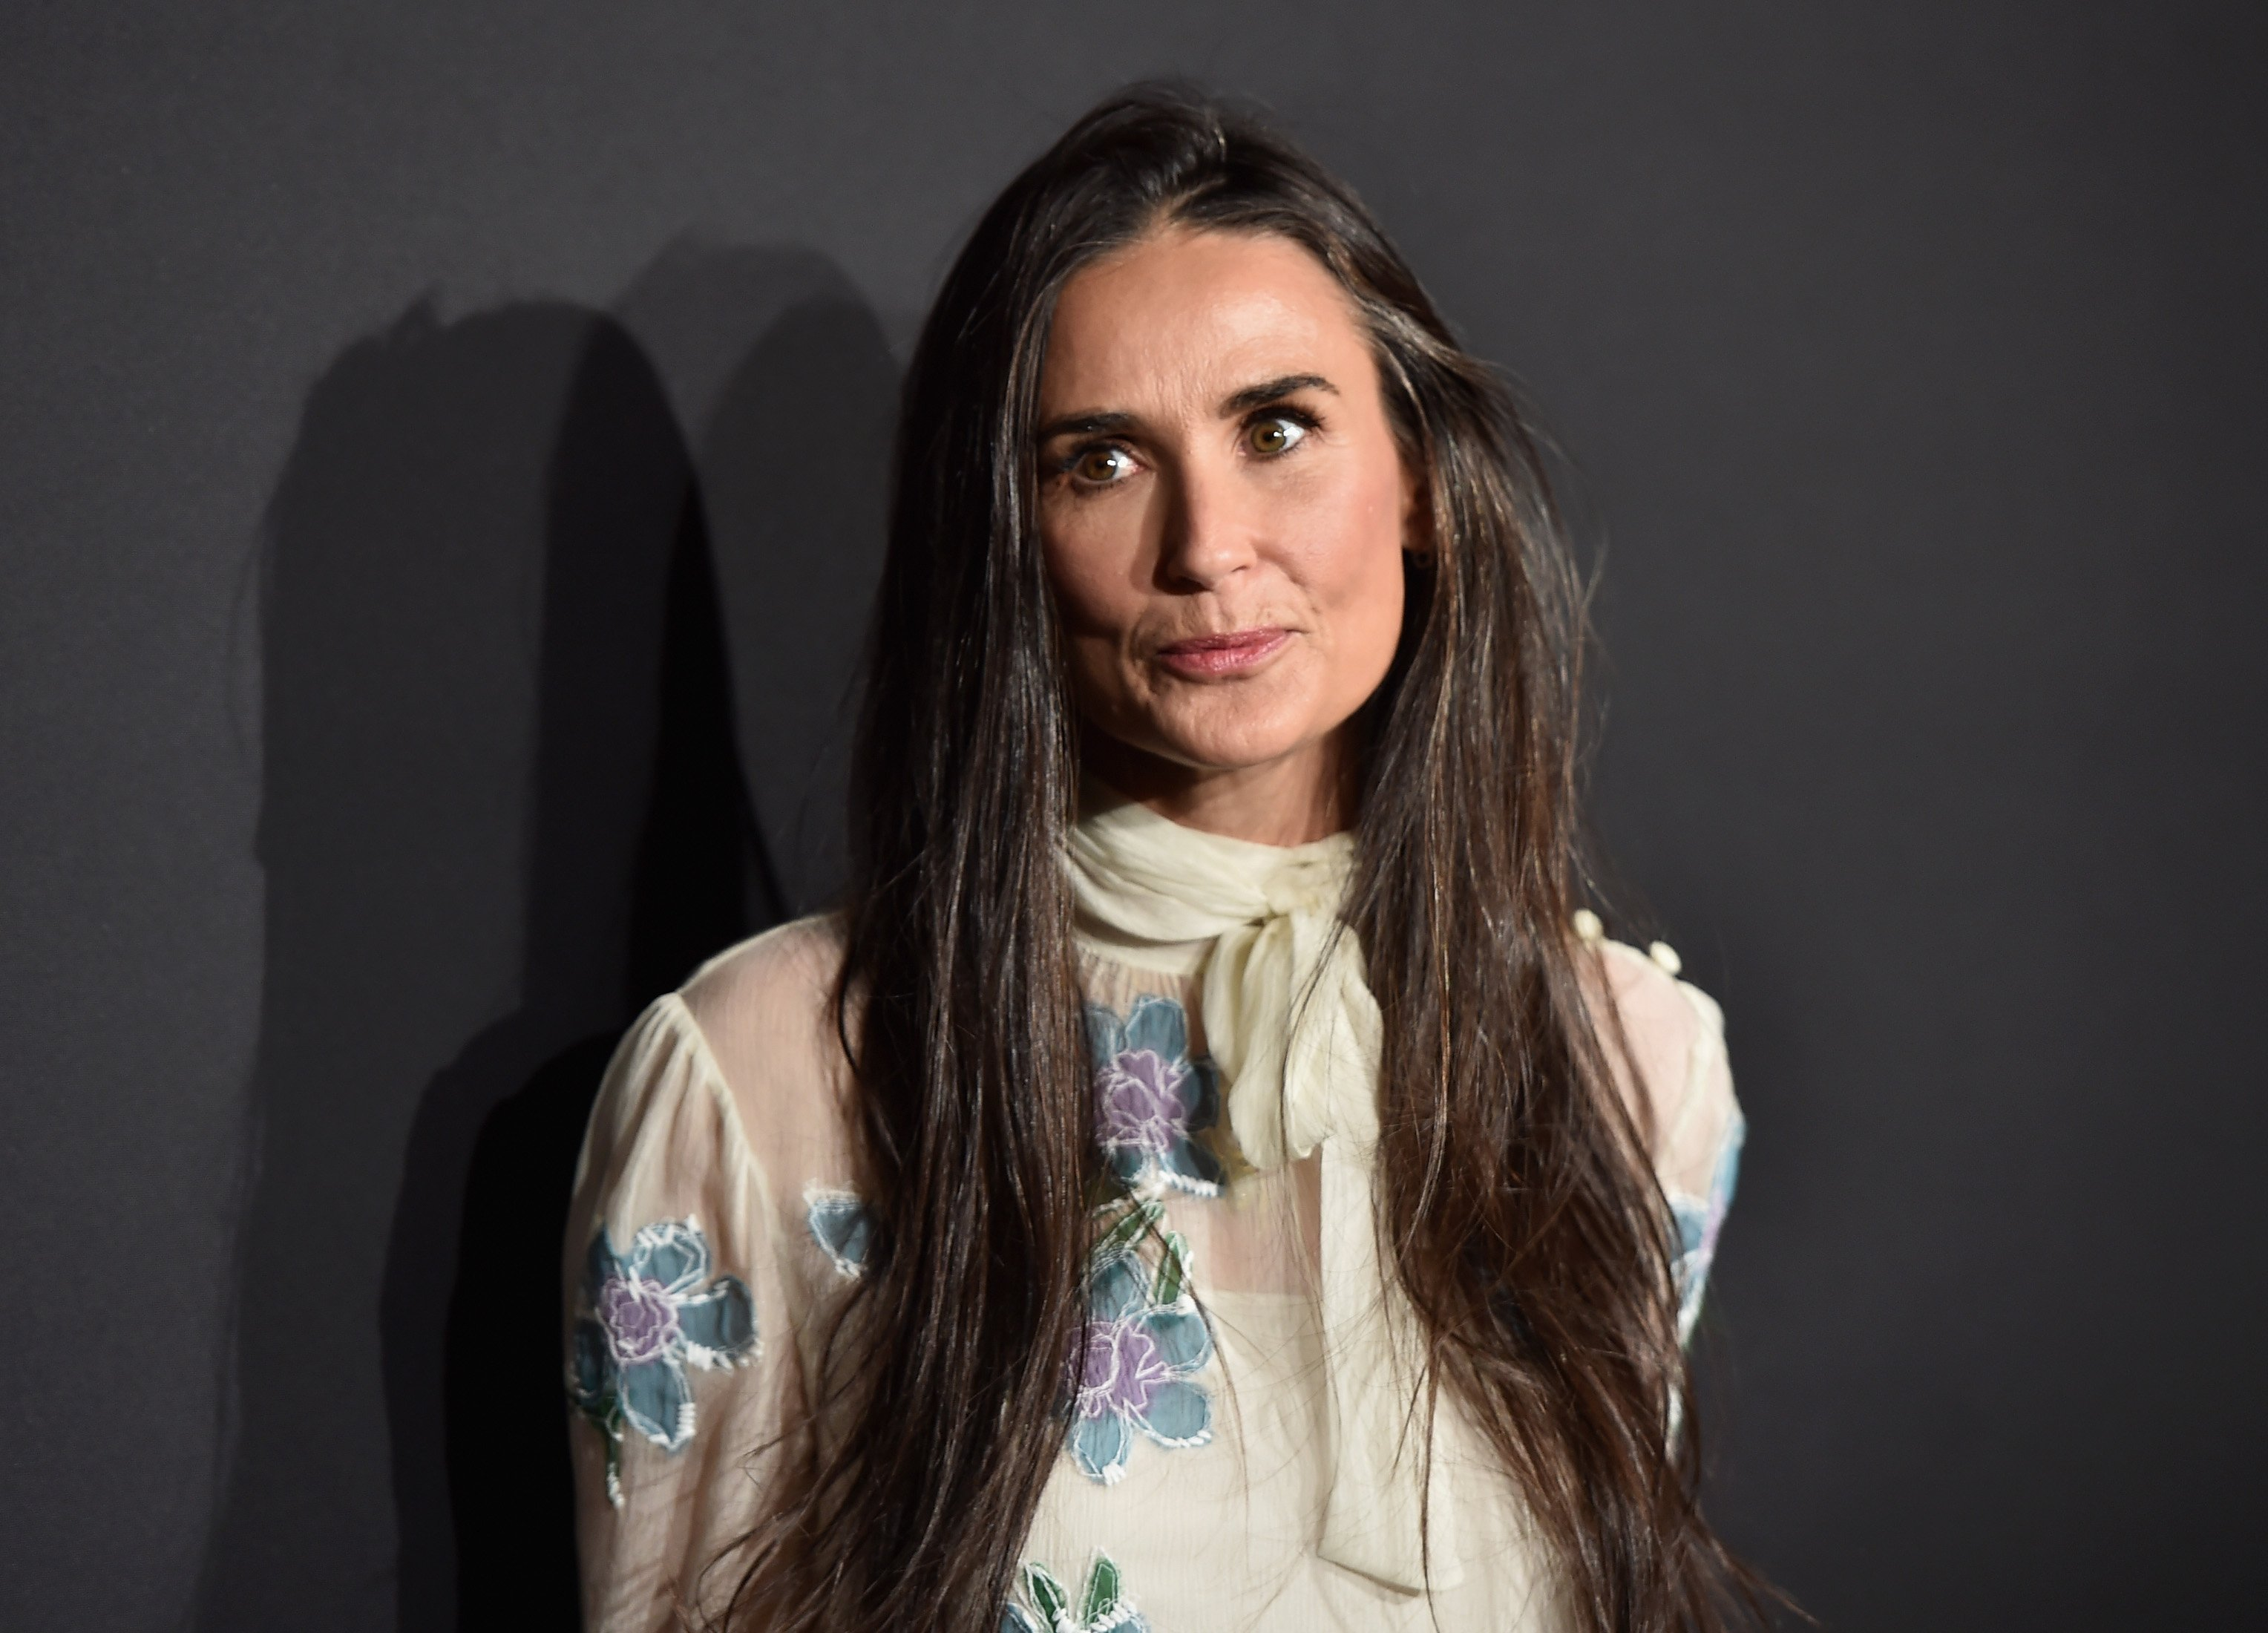 """""""Striptease"""" star Demi Moore attends the 2016 Prada's """"Past Forward"""" event at the Hauser Wirth & Schimmel in Los Angeles, California. 